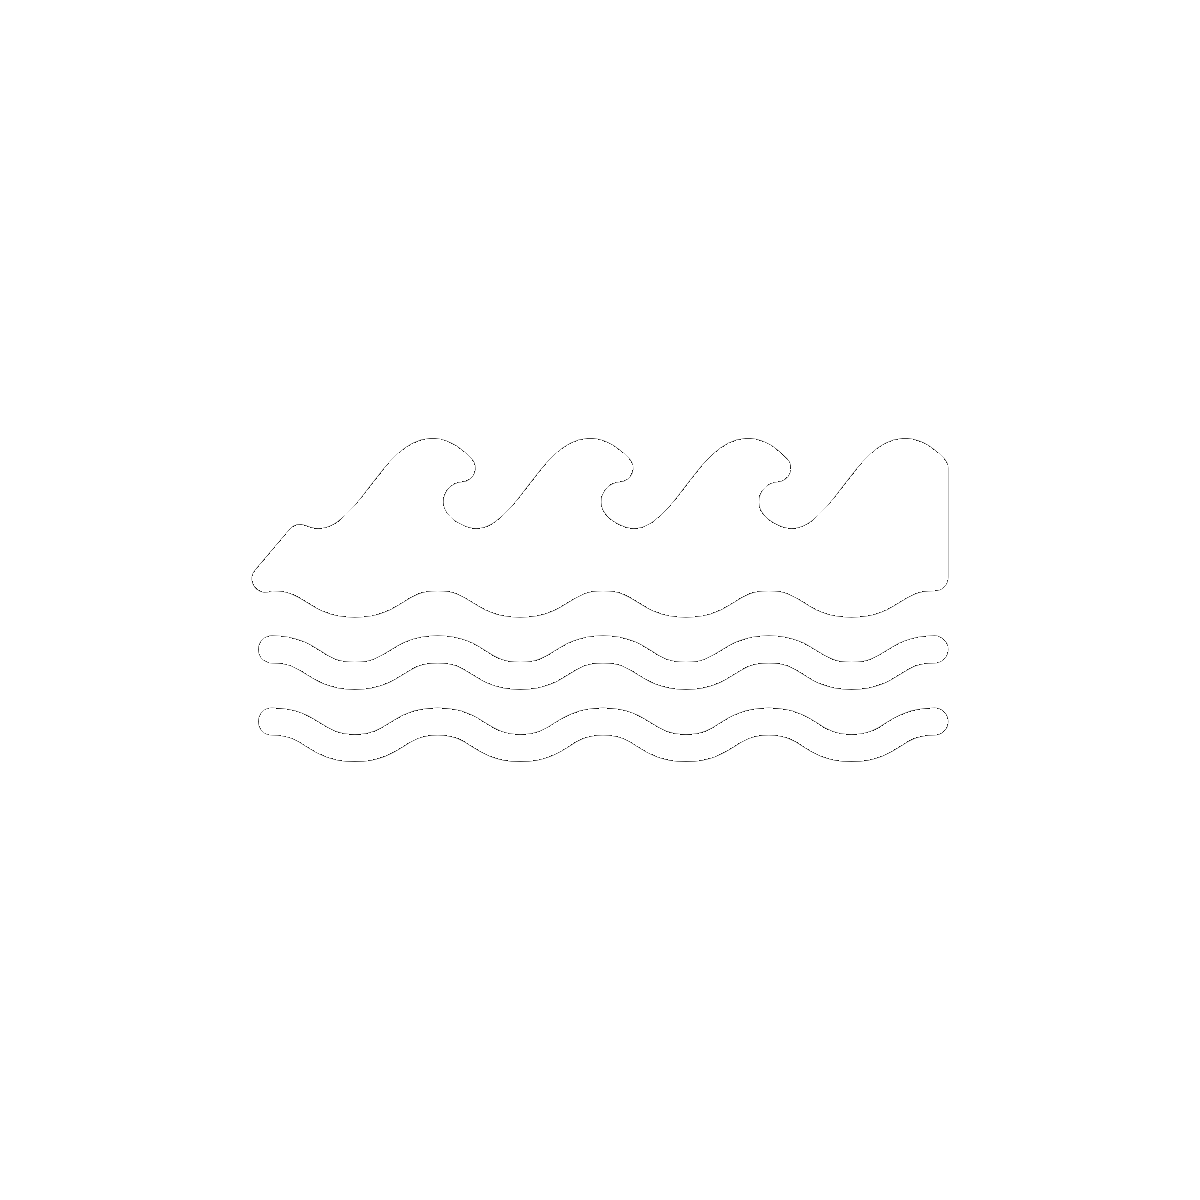 Symbol Oceans and Rivers